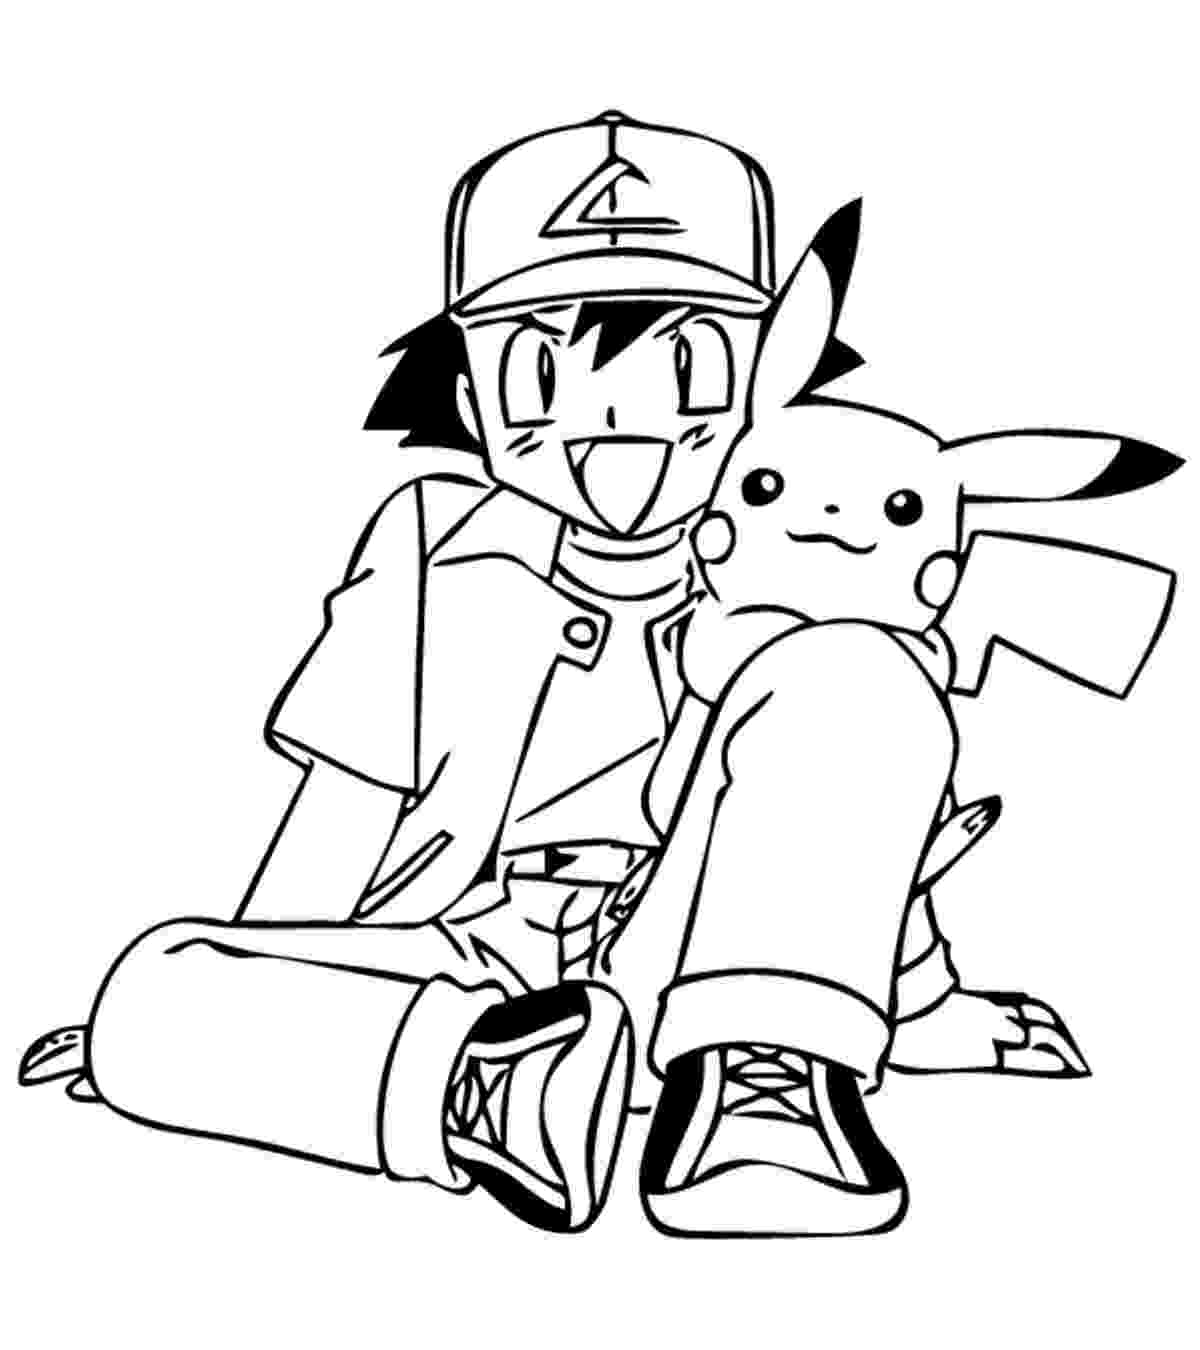 pokemon colouring pages pokemon coloring pages pokemon coloring pikachu colouring pokemon pages